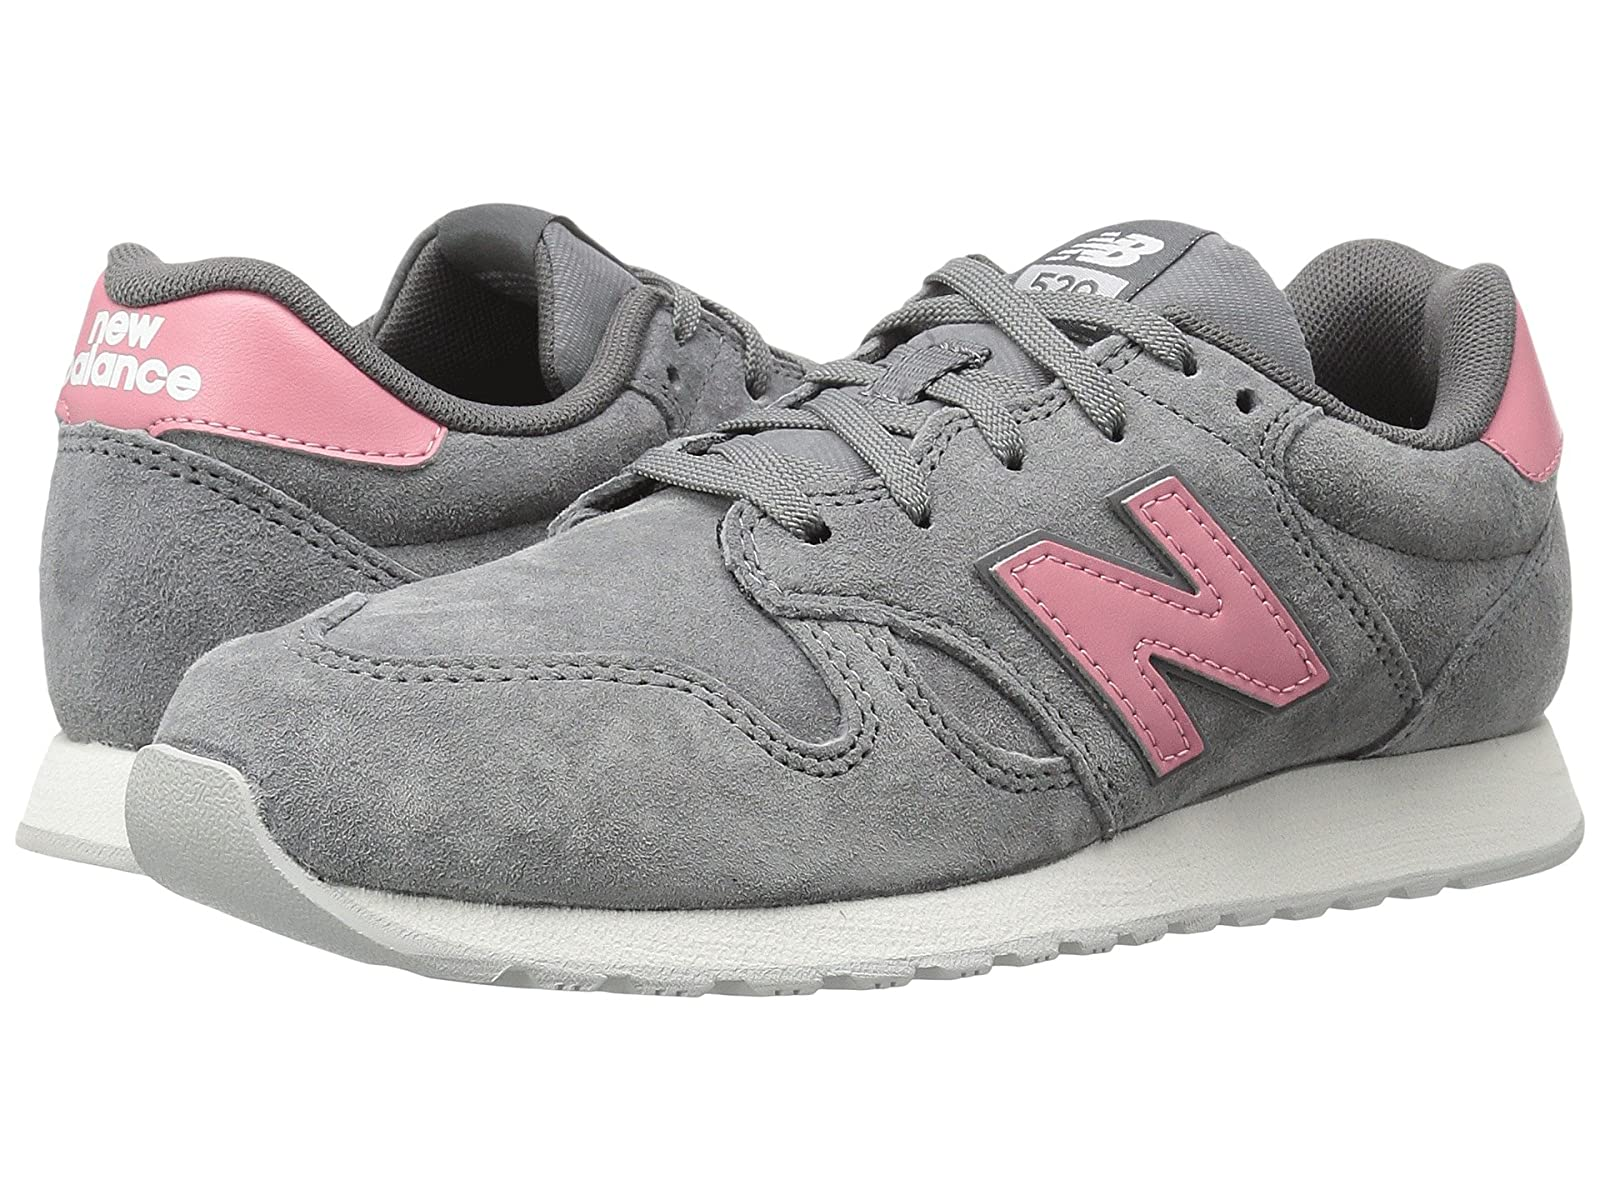 New Balance Classics WL5201Cheap and distinctive eye-catching shoes